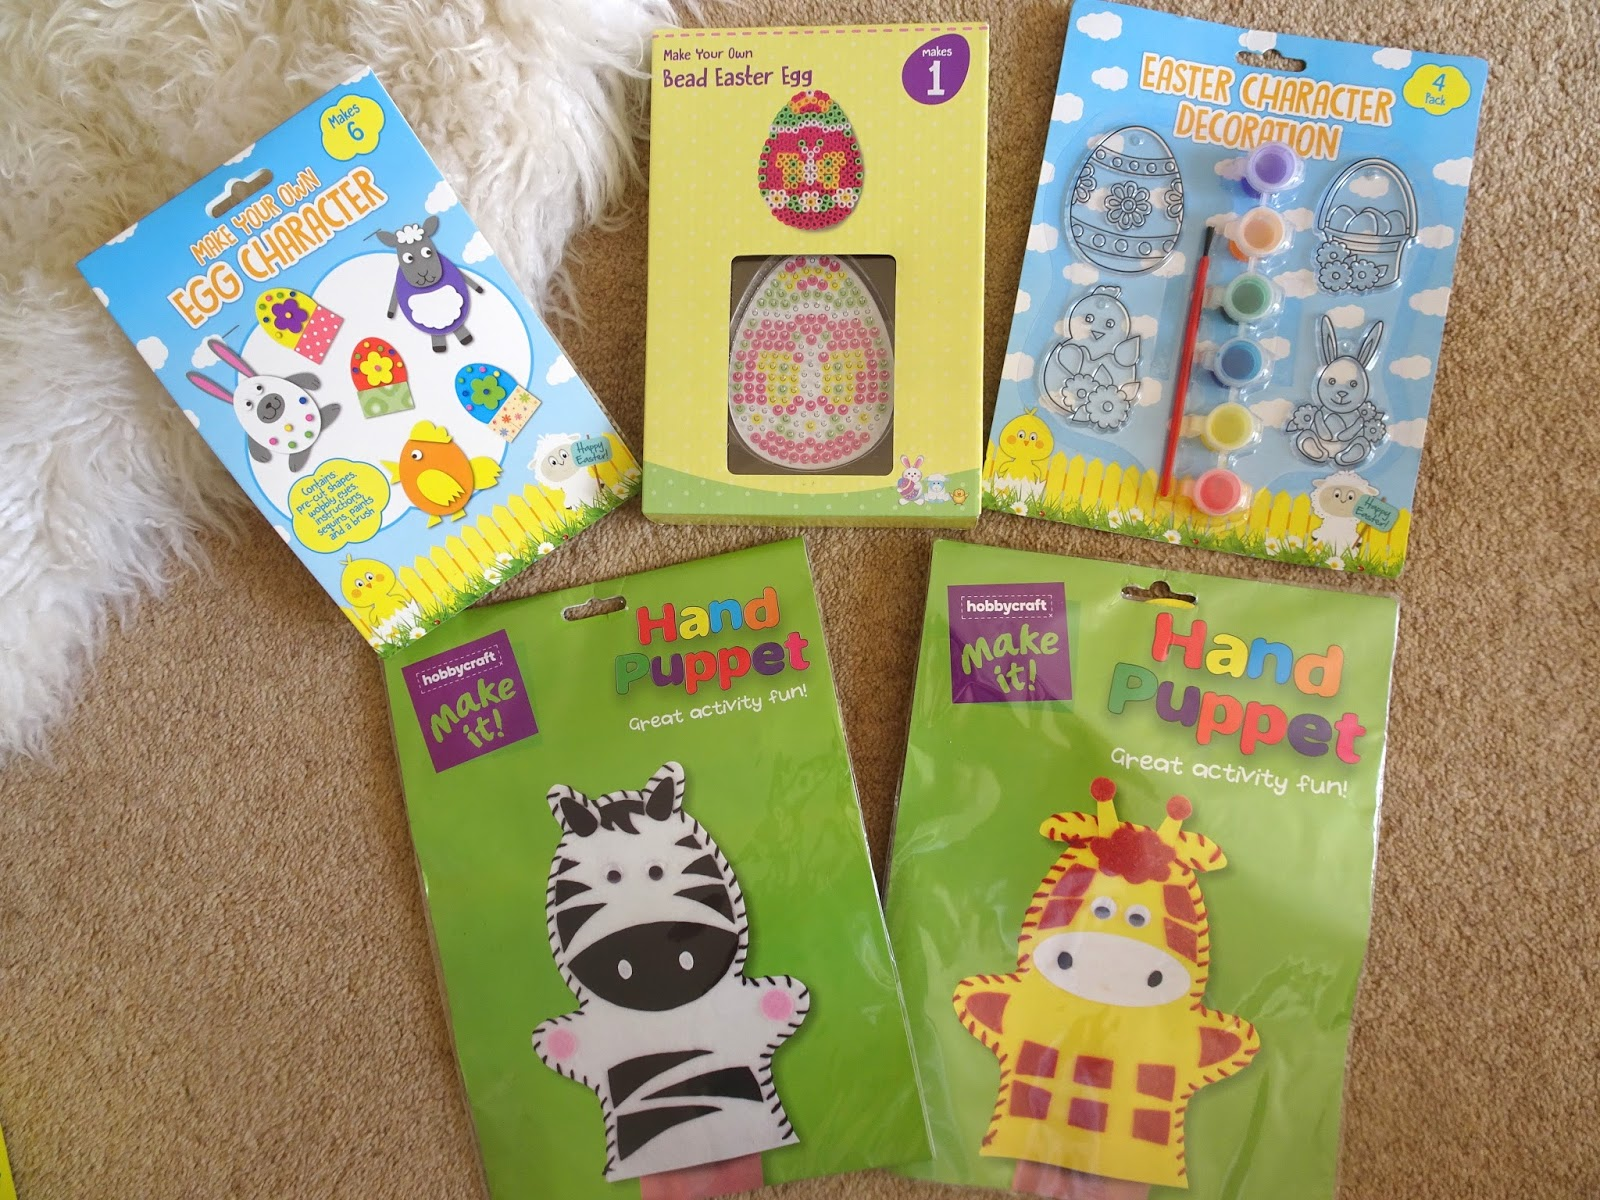 White apron poundland - These Crafts And Activities Are For Sharing There Are A Couple From Poundland And Two Make Your Own Hand Puppets From Hobby Craft Which Is Had Stashed Away